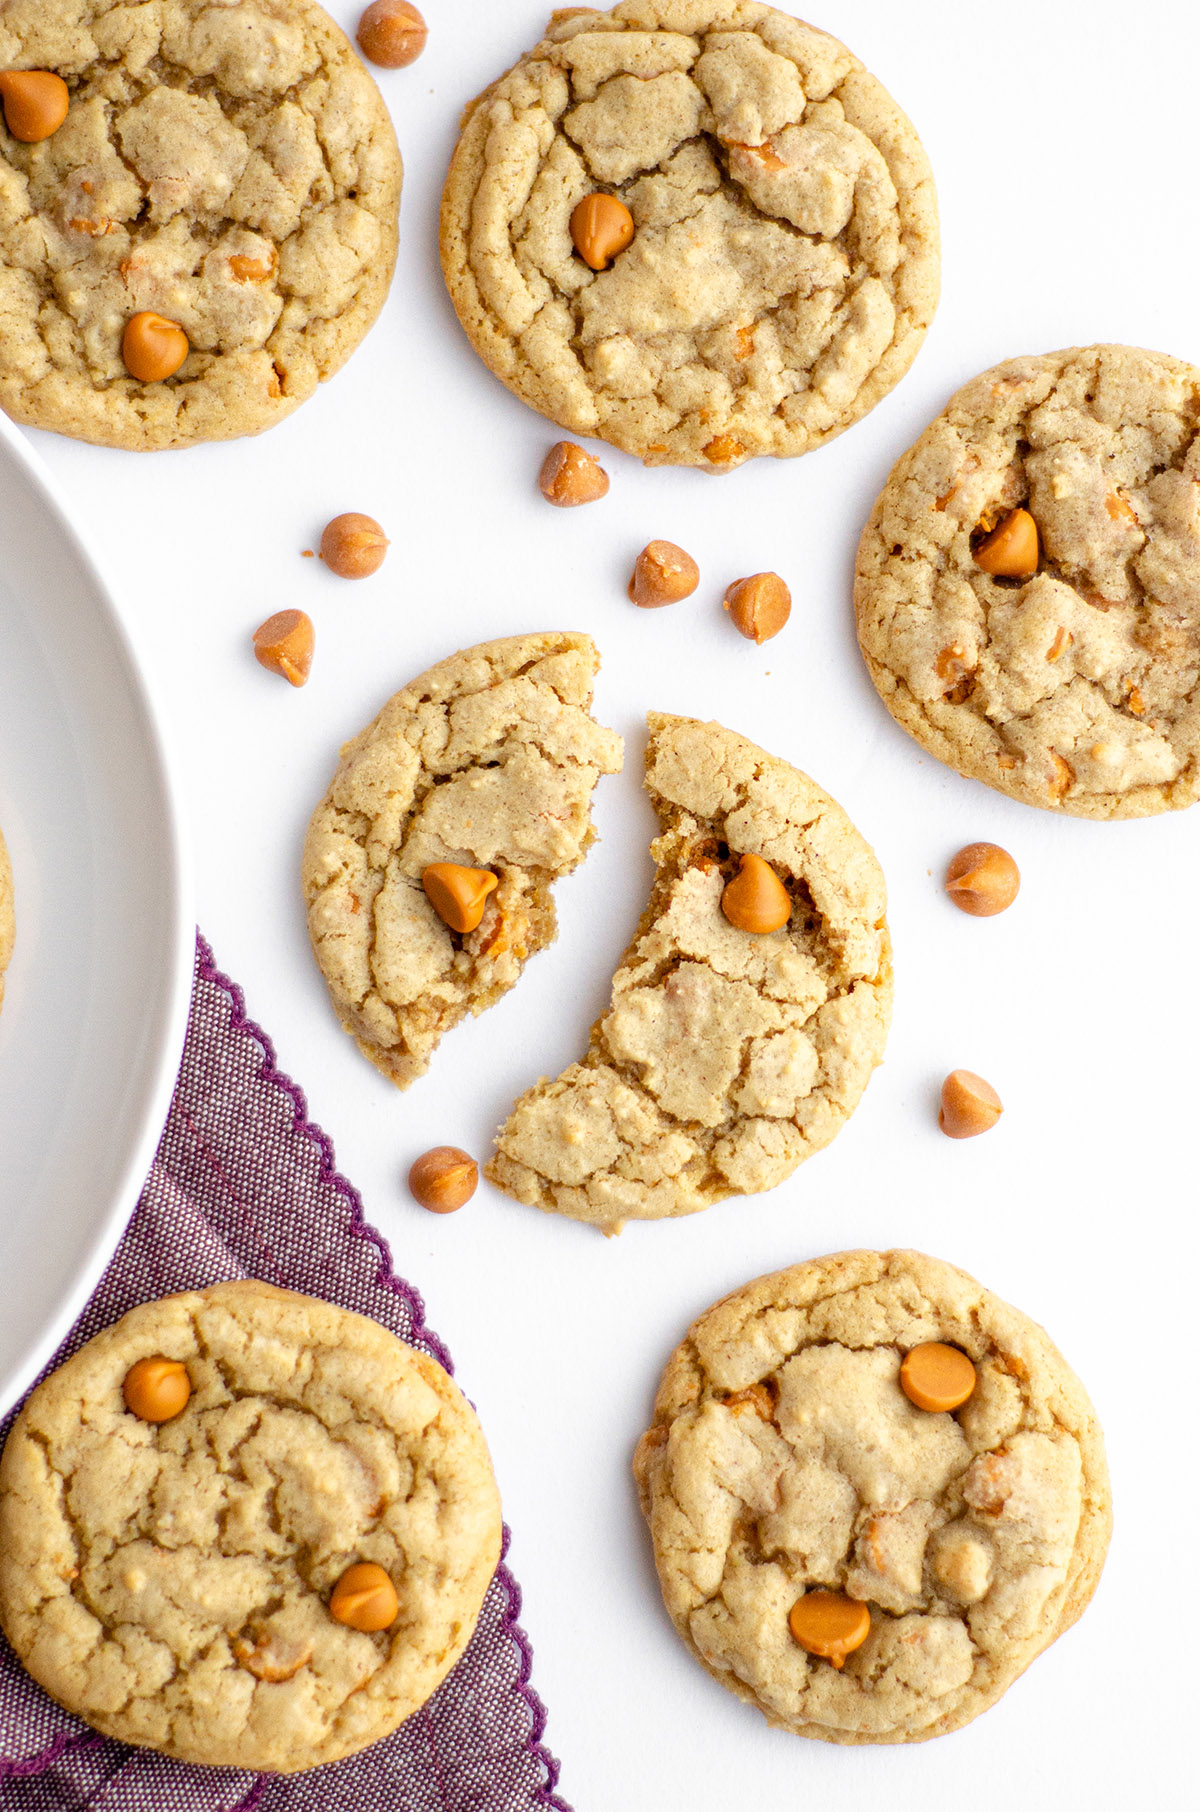 Easy brown sugar drop cookies filled with a heavy dose of butterscotch chips. No chilling required!